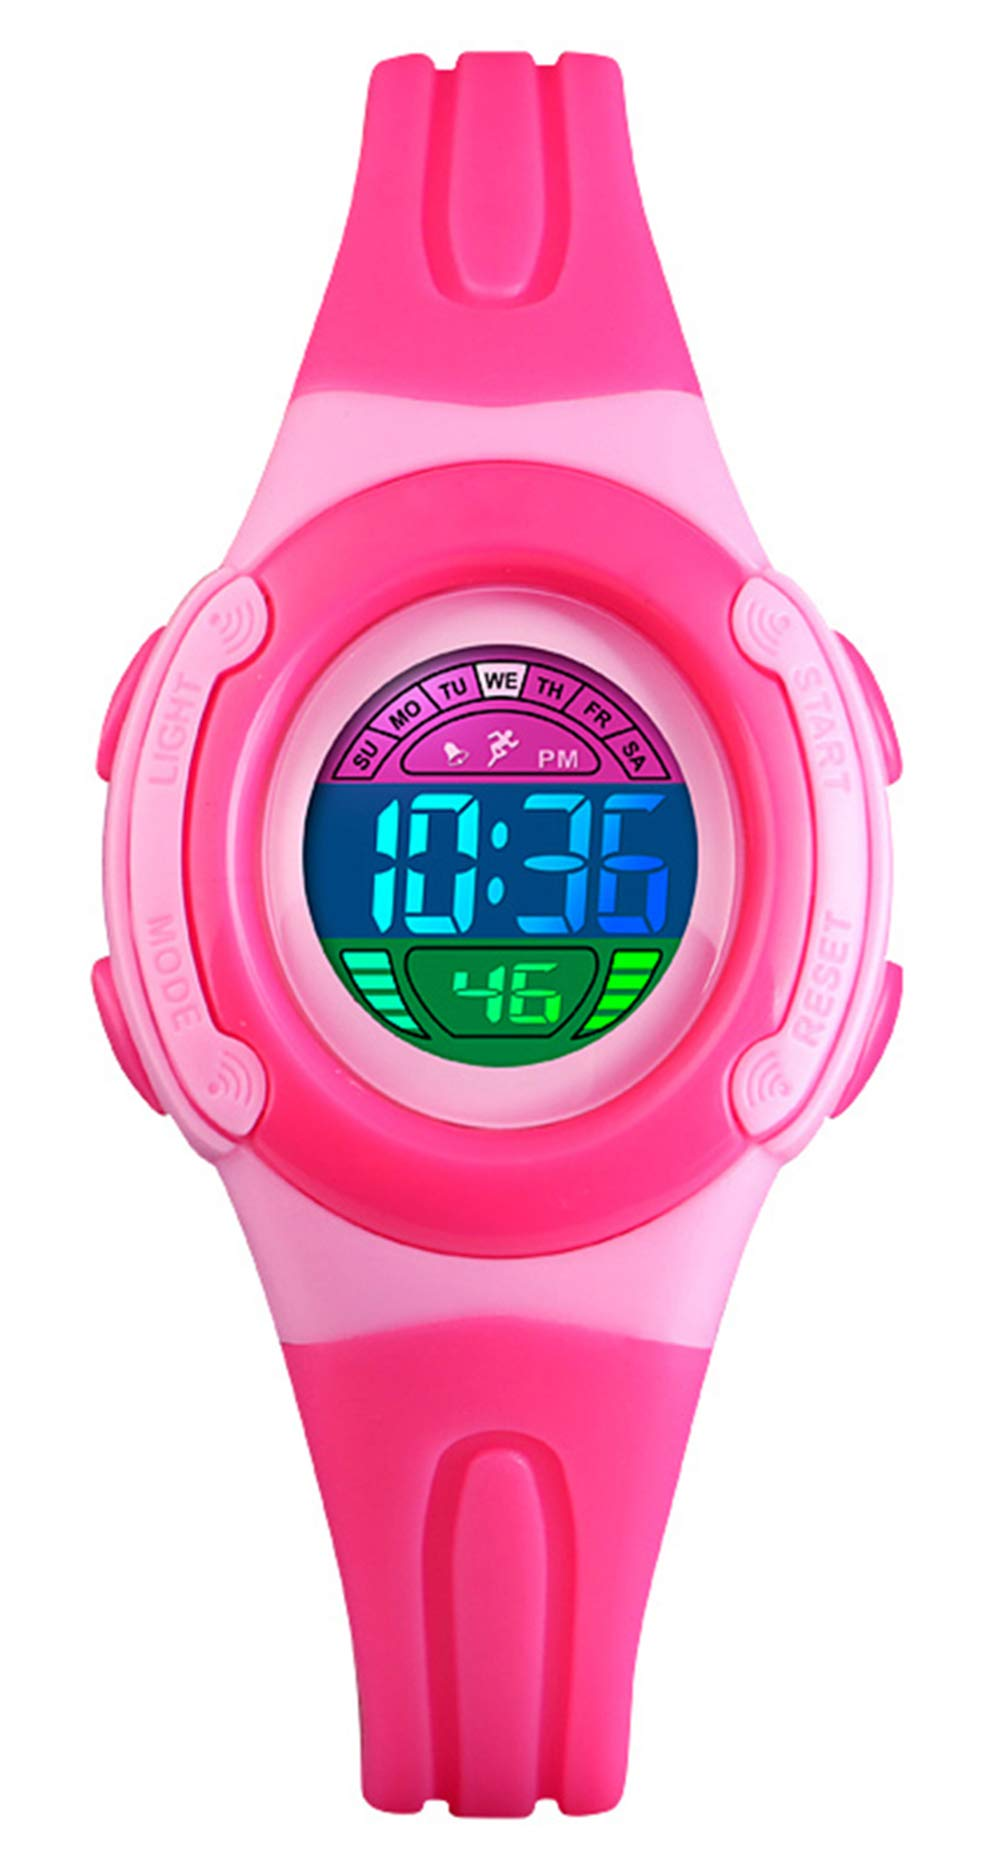 BHGWR Girls Watches, Daily Waterproof Kids Digital Watch with Stopwatch/Alarm/Colorful EL Light, Childrens LED Sport…